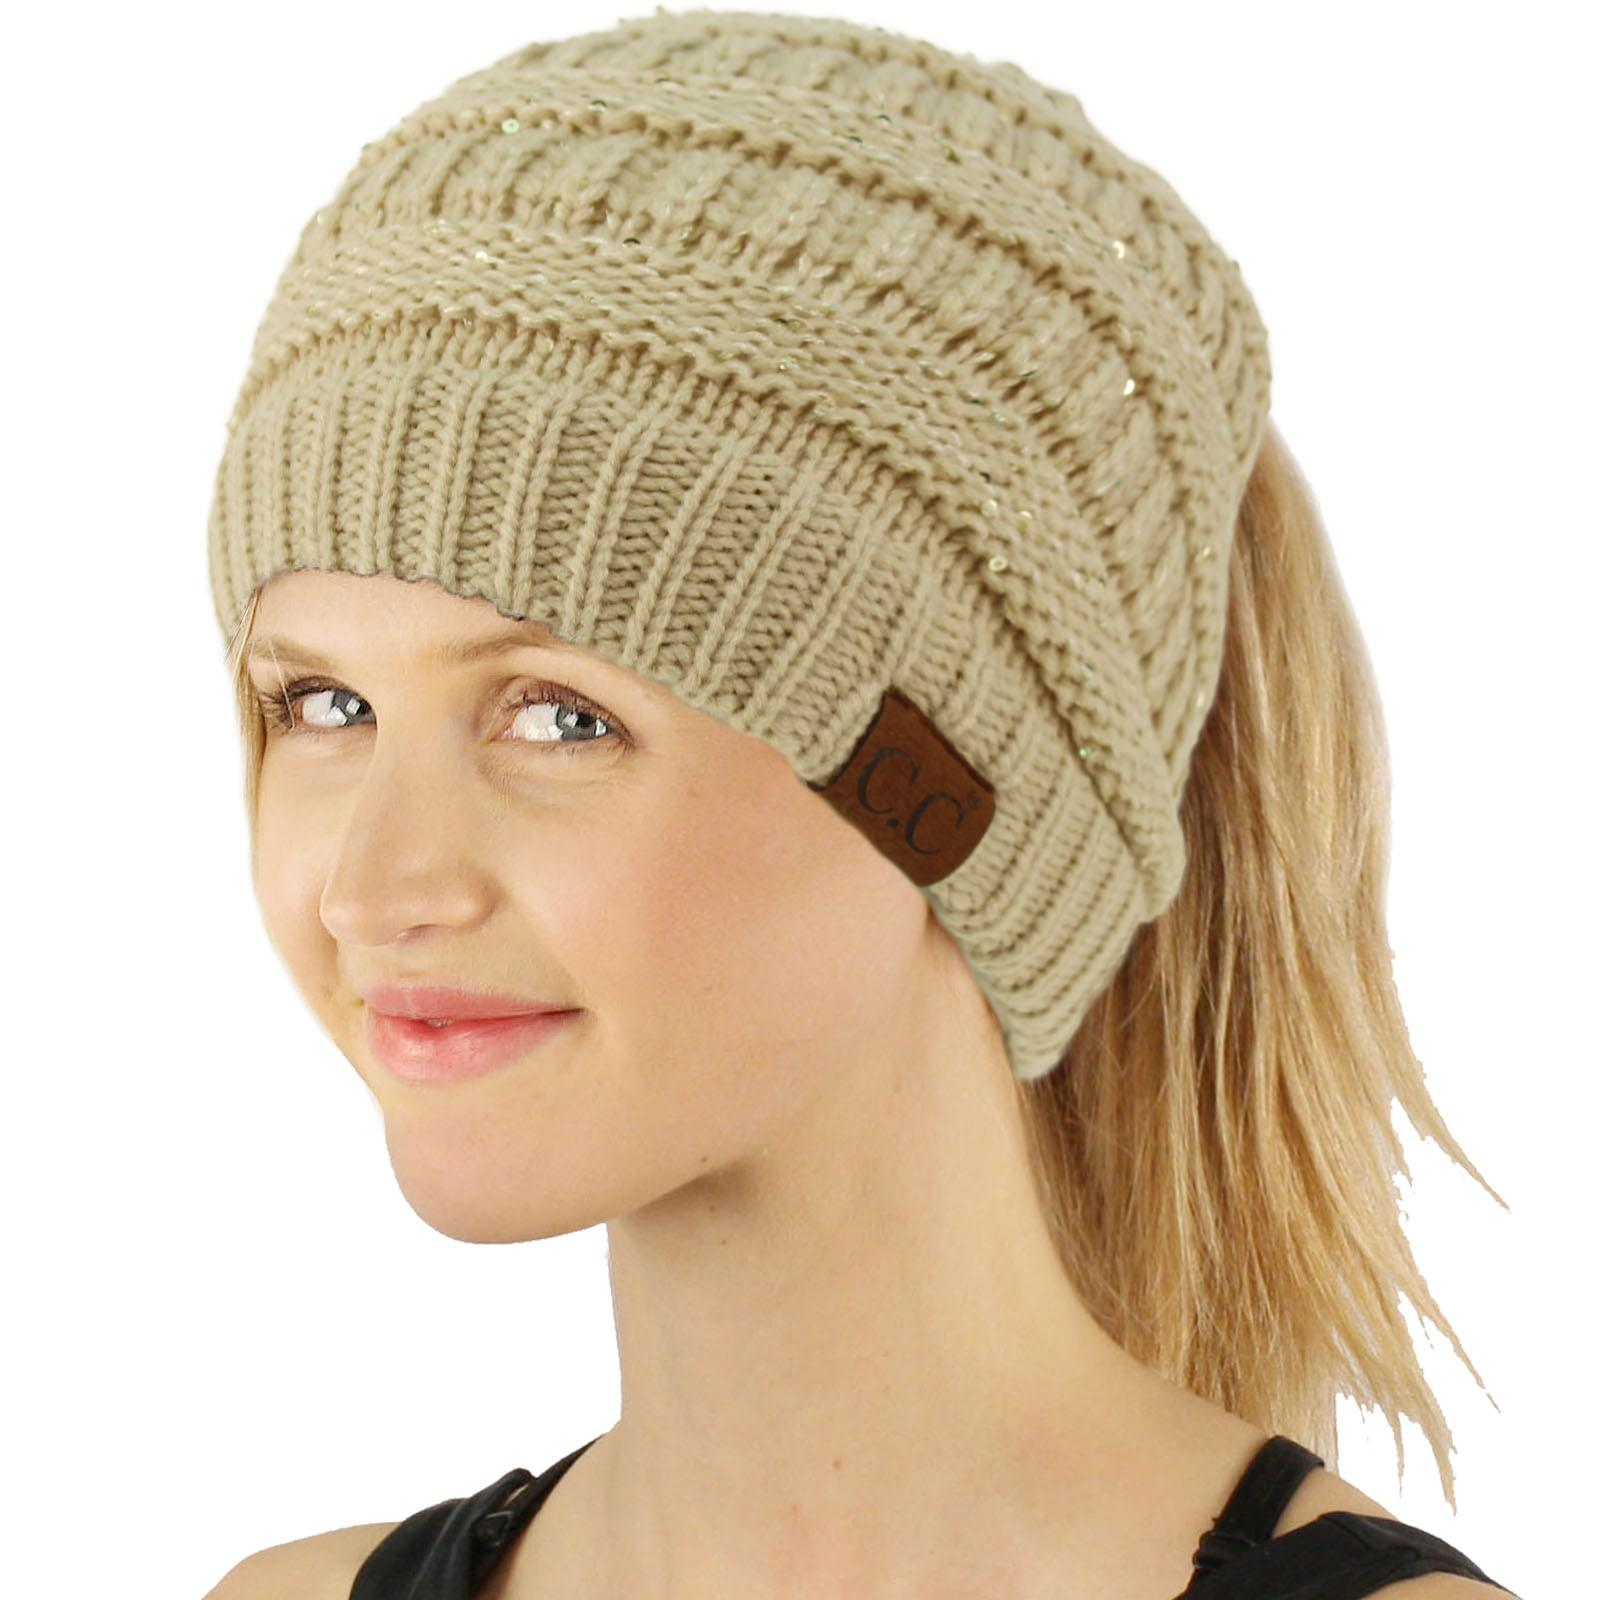 f9aa610c8d2 Soft Knit Ponytail Beanie Winter Hats for Women Messy Bun Cap Knitted –  AICVLGR Apparel